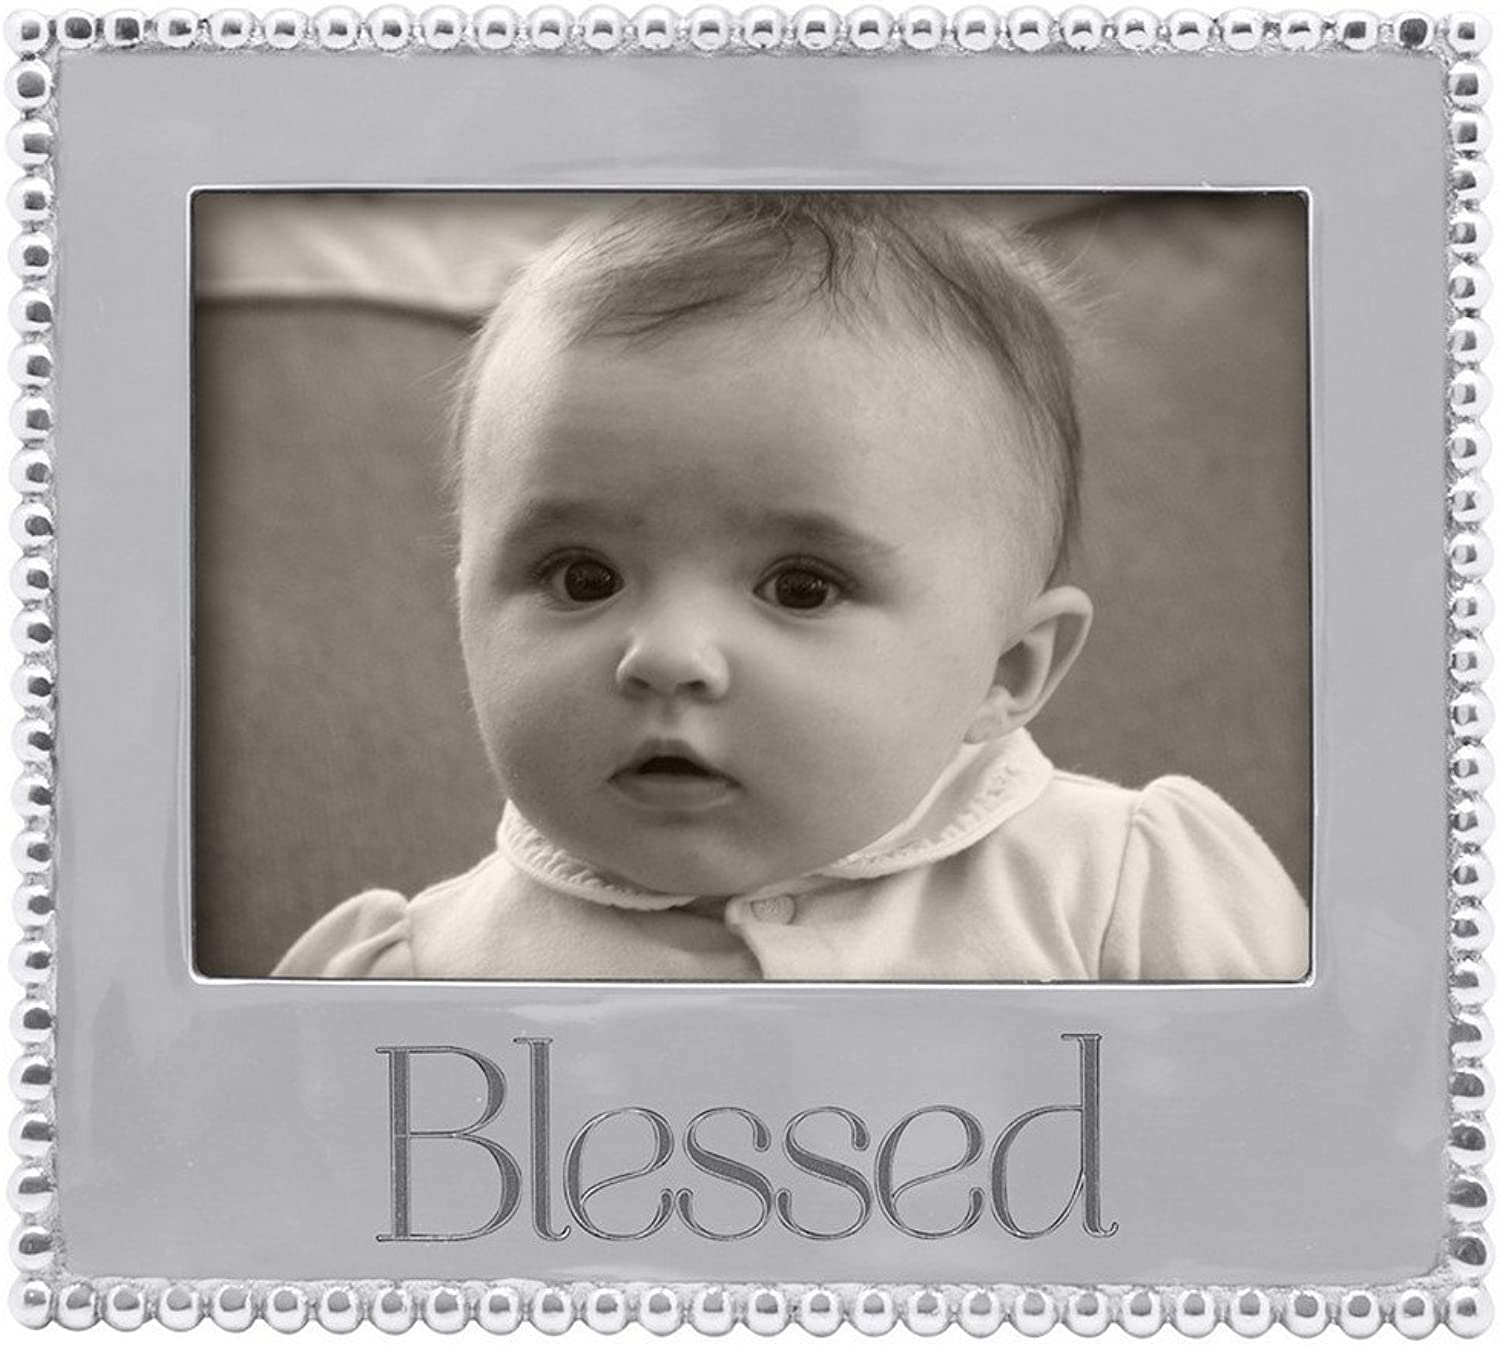 Mariposa  Blessed  Frame, 5  x 7